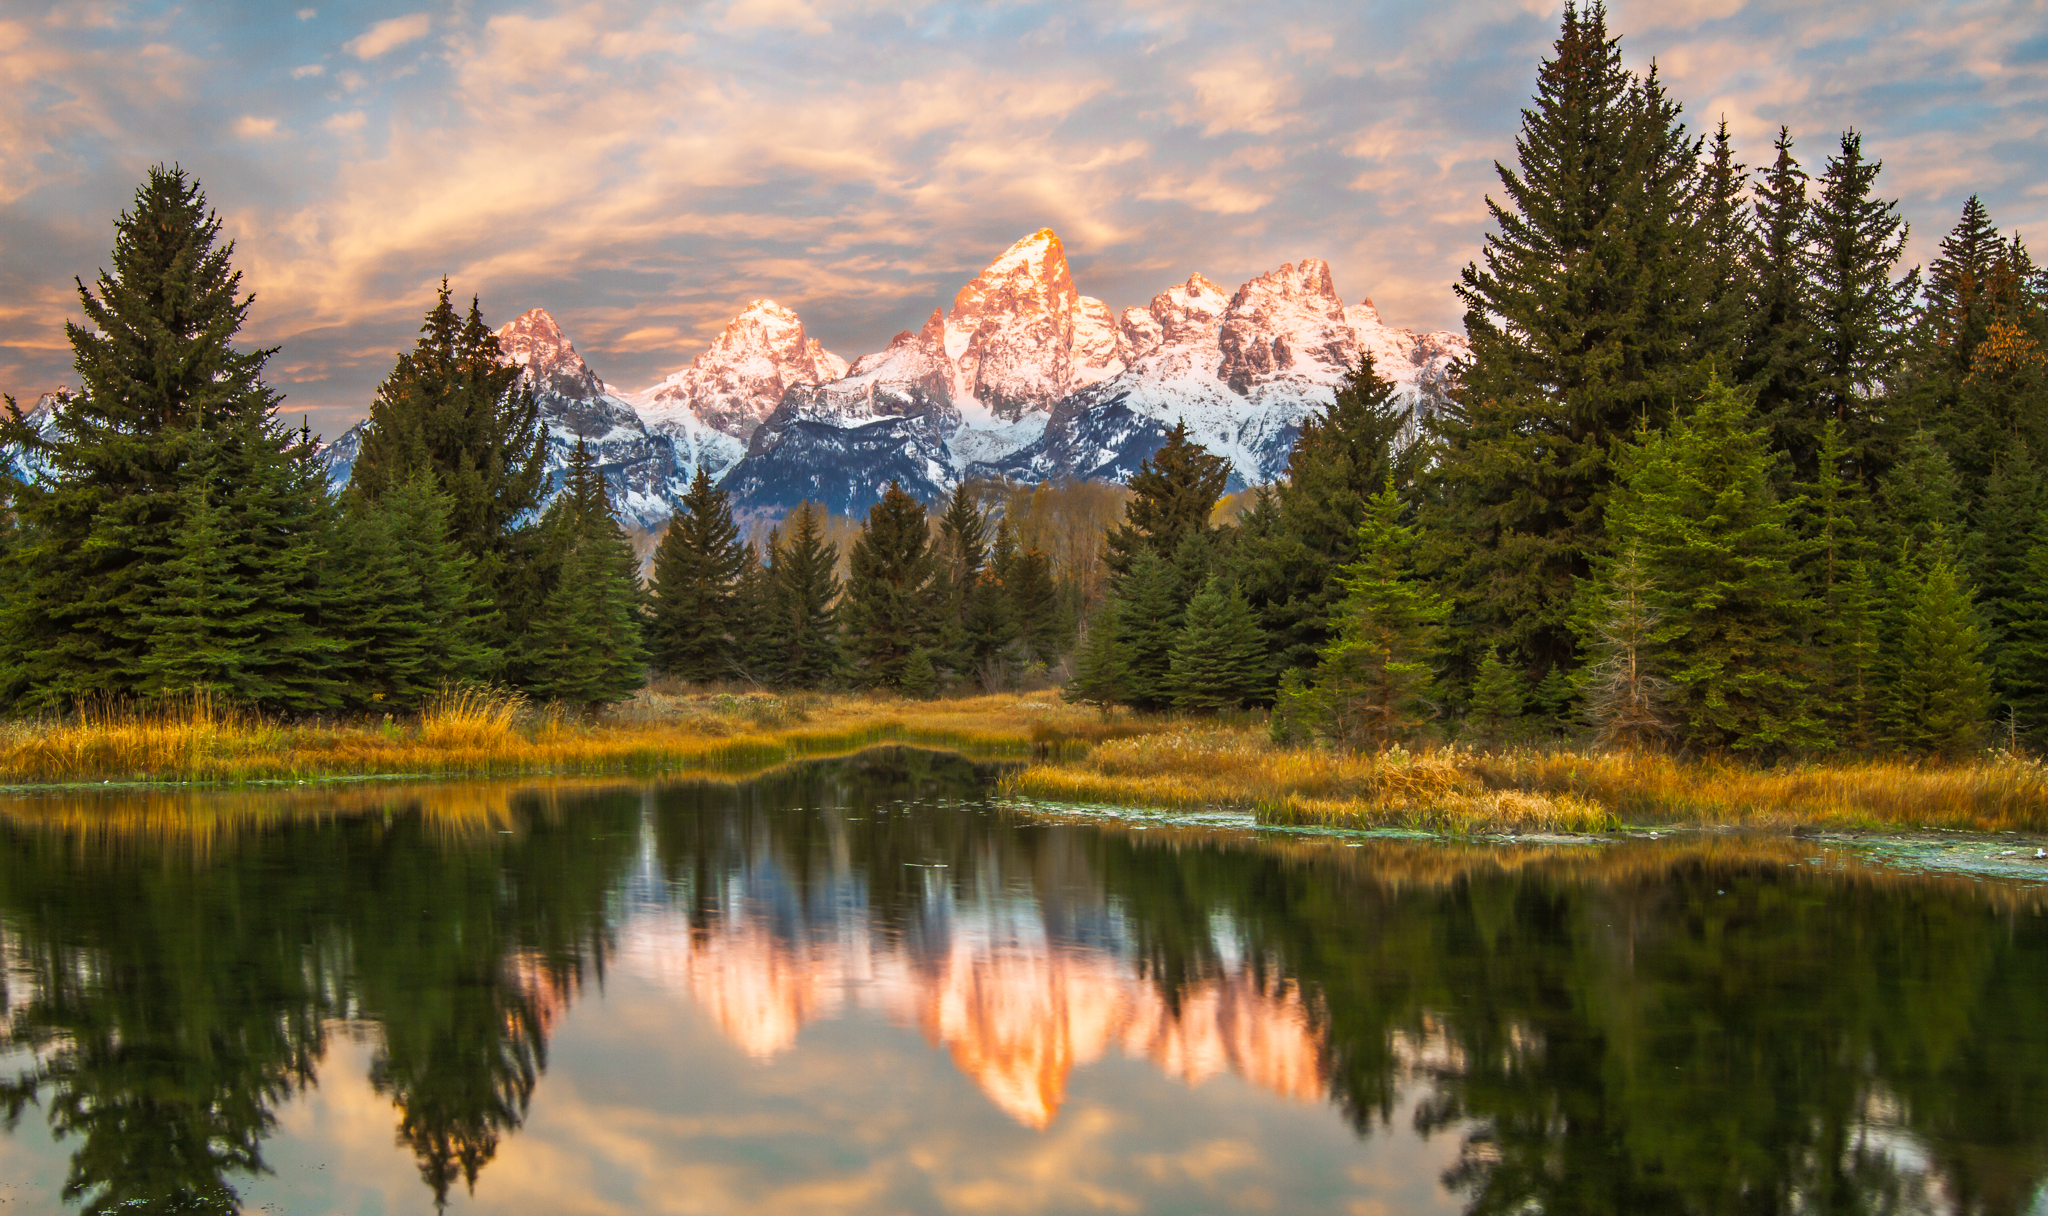 this images was made at schwabacher landing in Grand Teton National park at sunrise. A ND Grad is highly recommended as the sun light the mountain peaks way before it reaches the forests below.